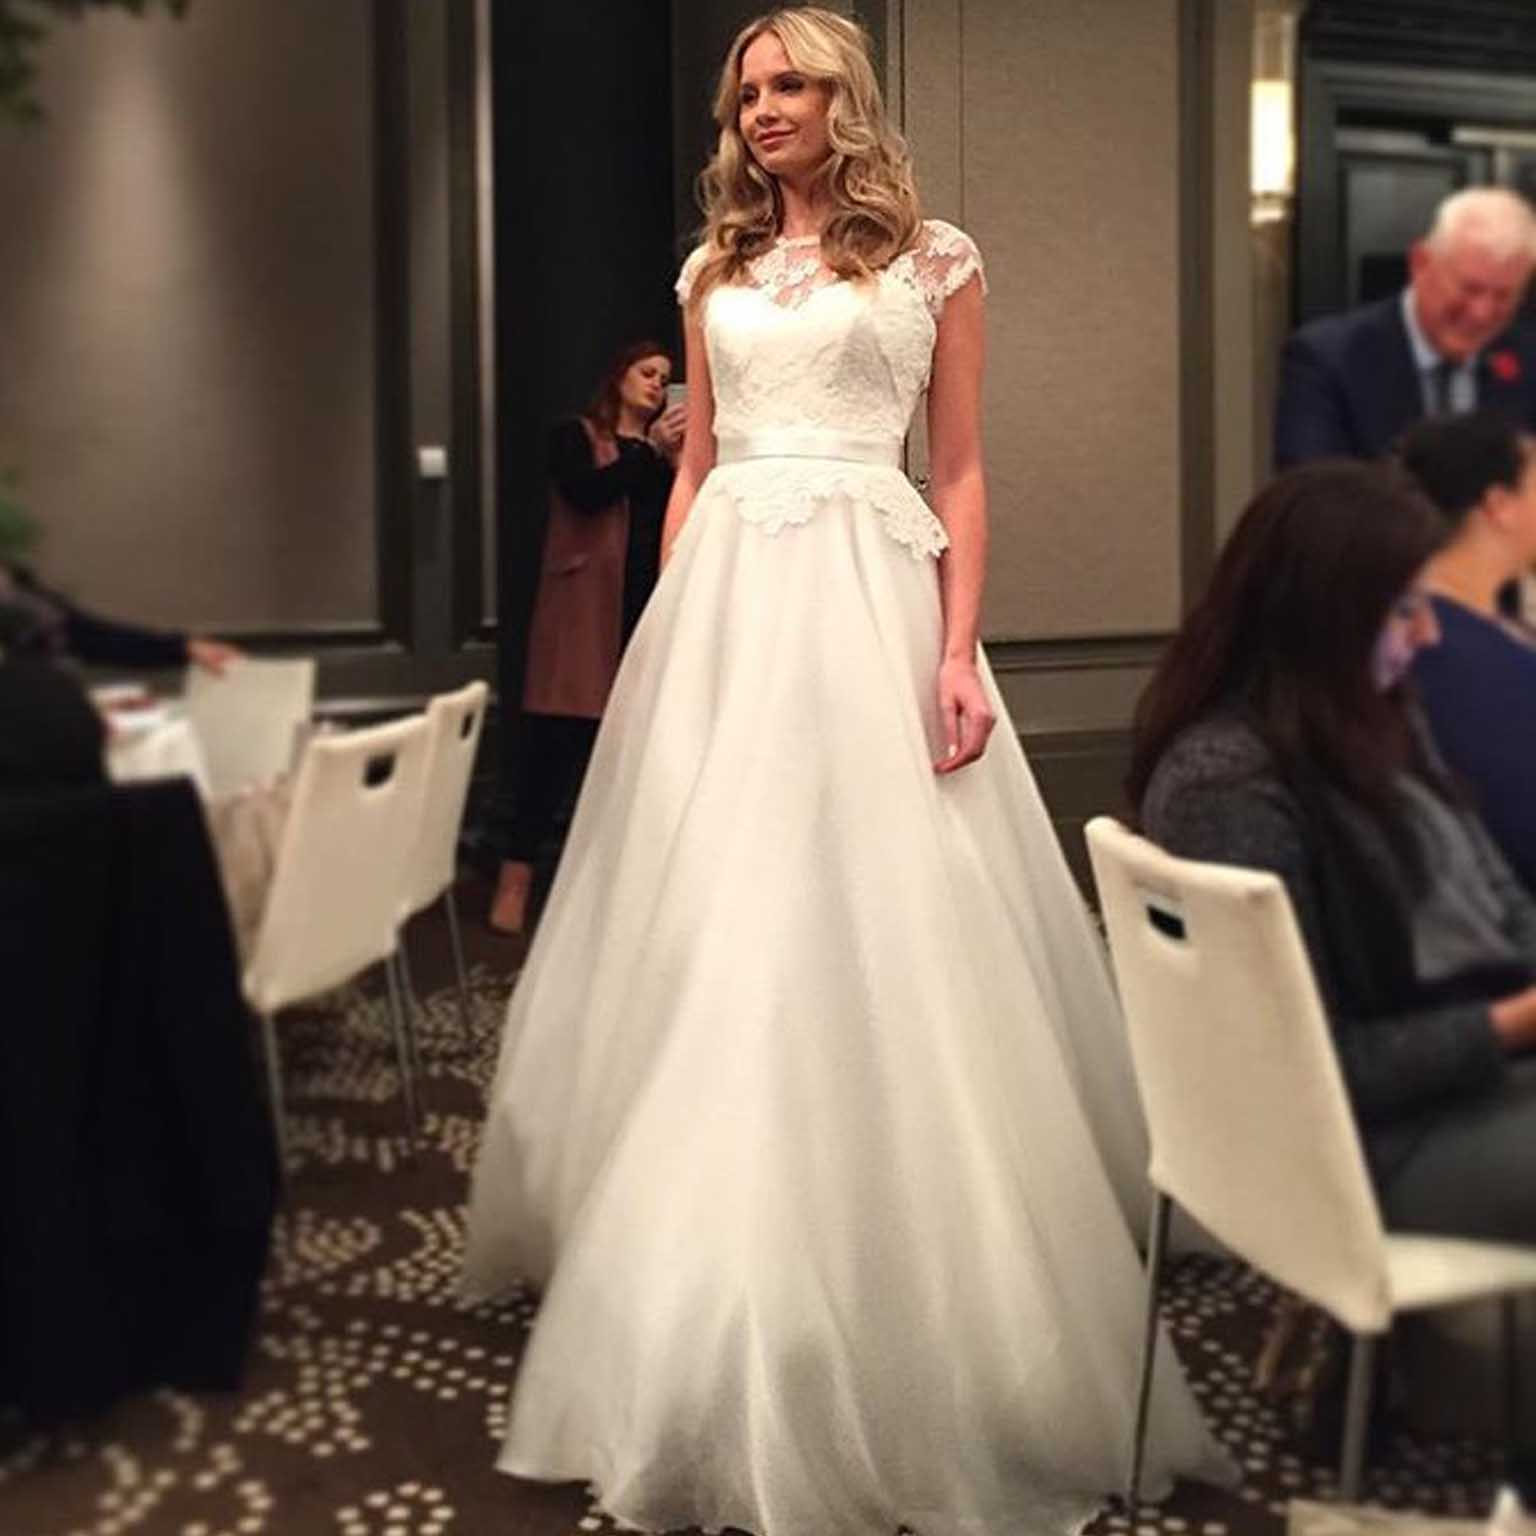 Image of Freya Rose bride at Suzanne Neville bridal evening with brides